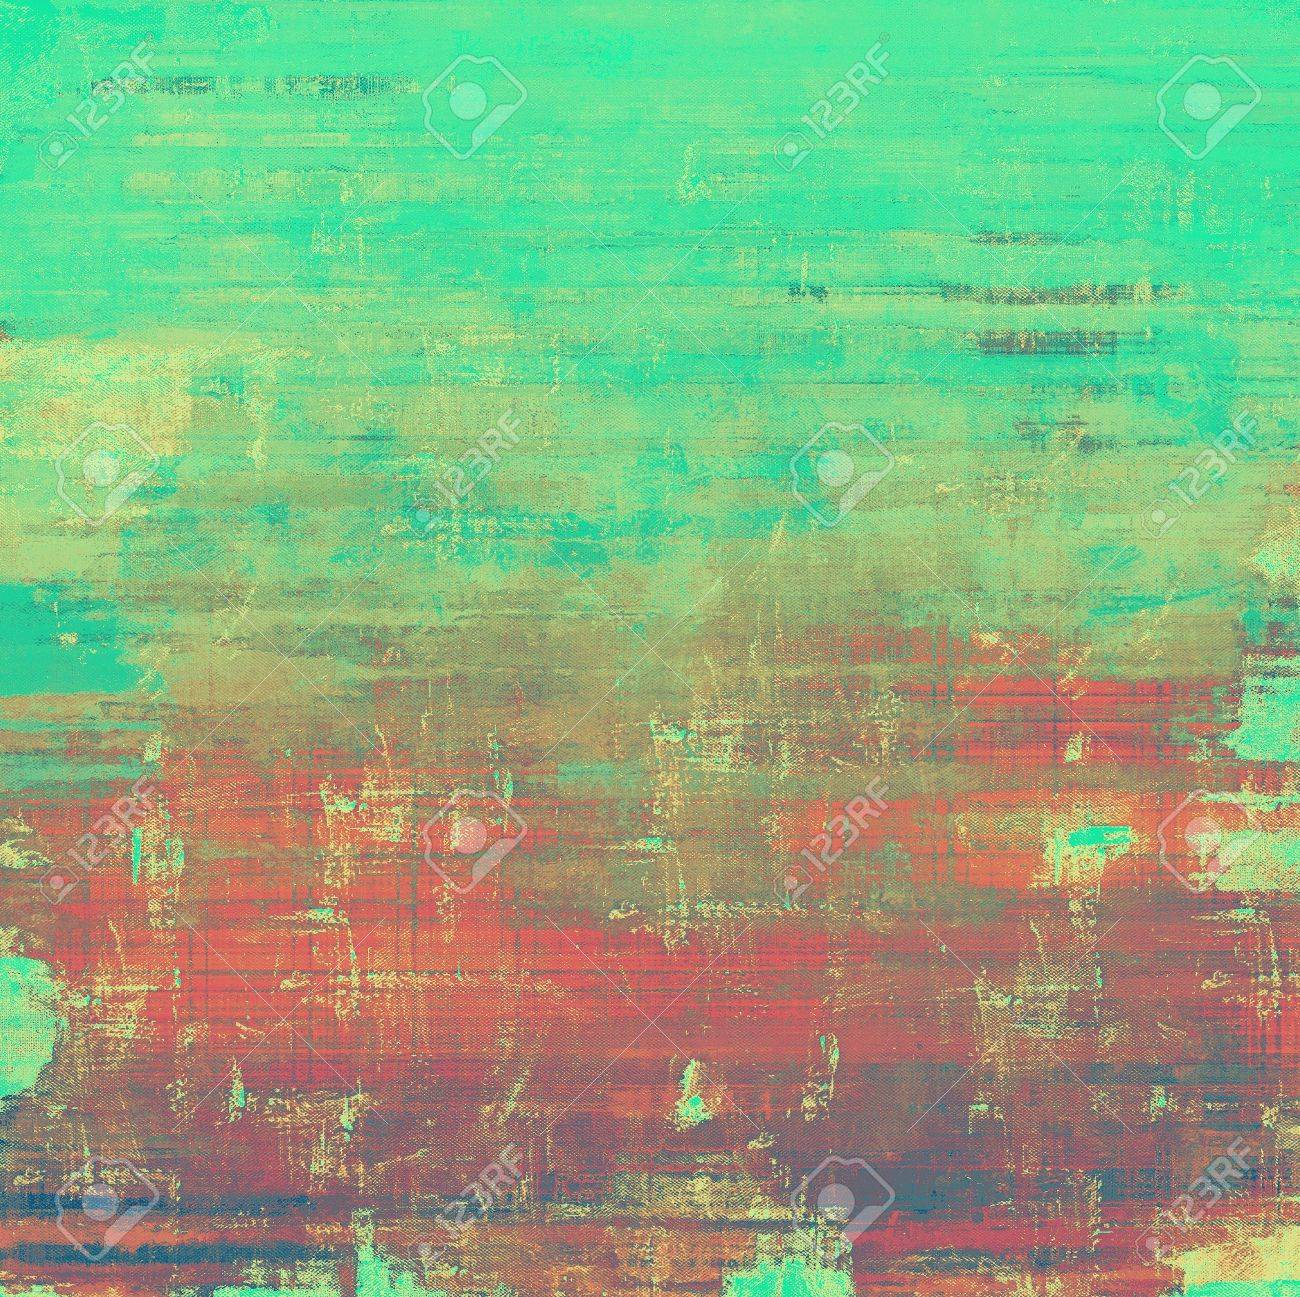 Vintage Texture Ideal For Retro Backgrounds With Different Color